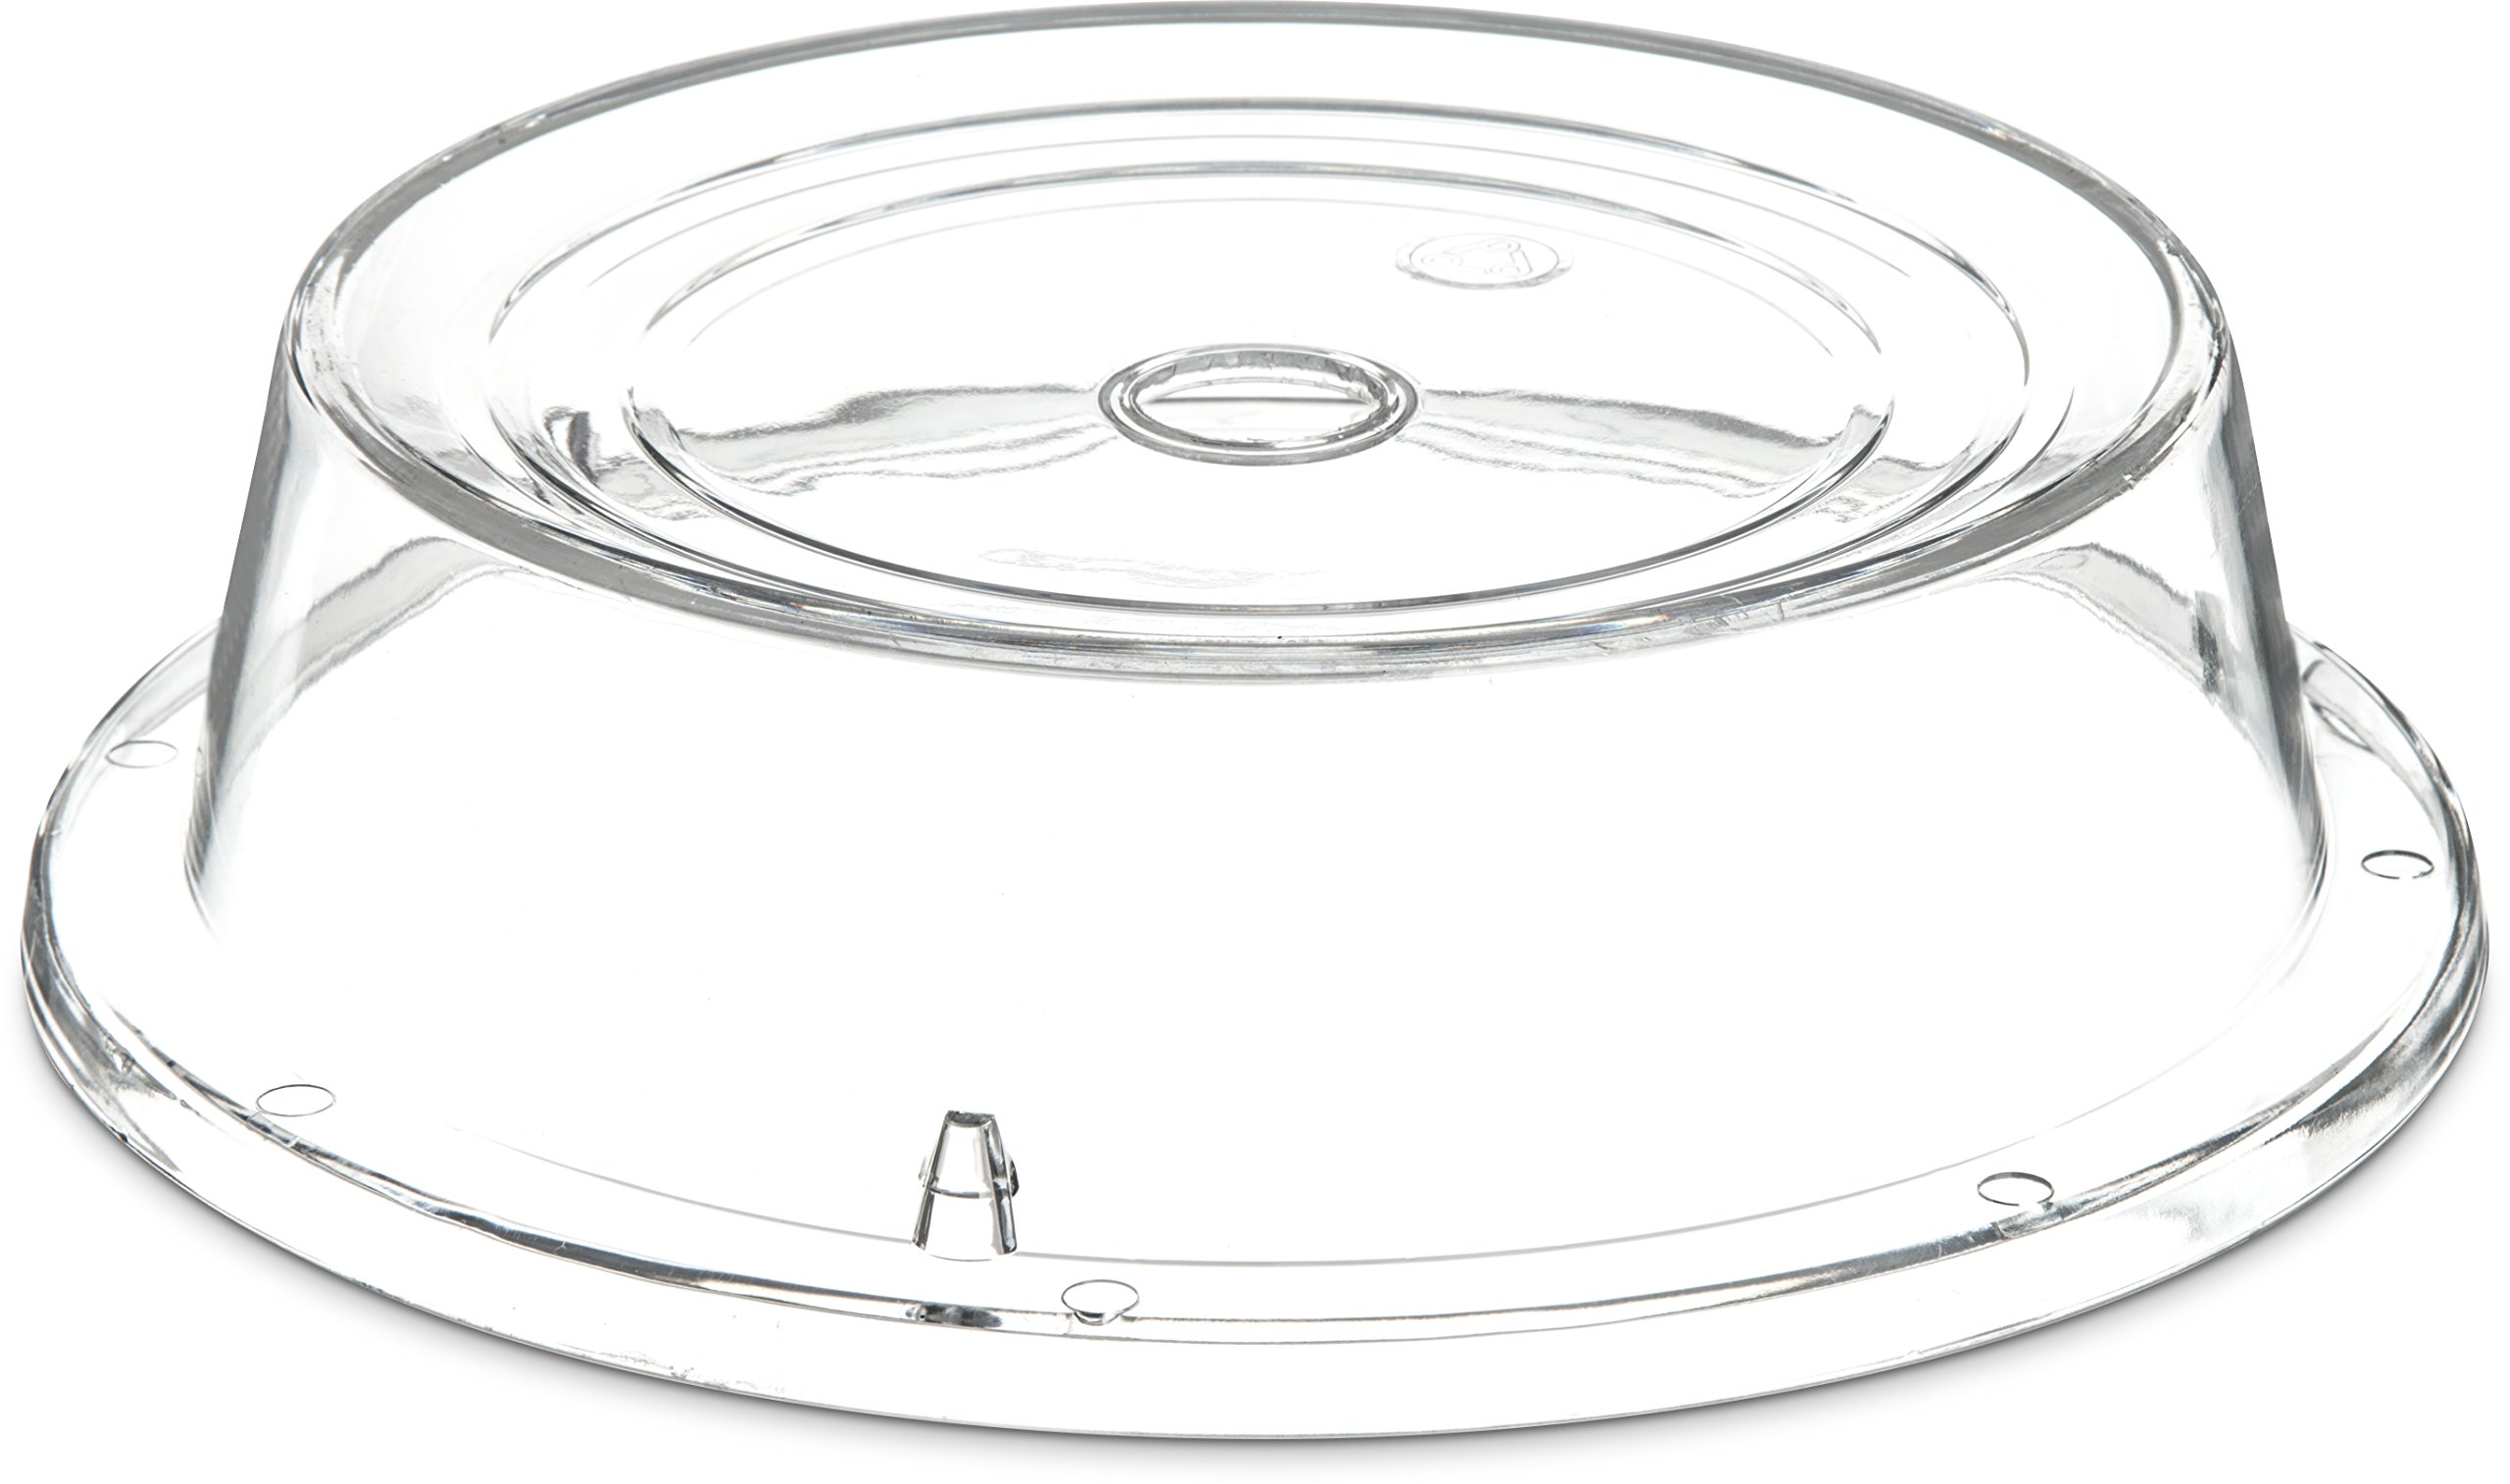 Carlisle 196507 Polycarbonate Plate Cover, 10'' Bottom Diameter x 2.65'' Height, Clear (Case of 12)